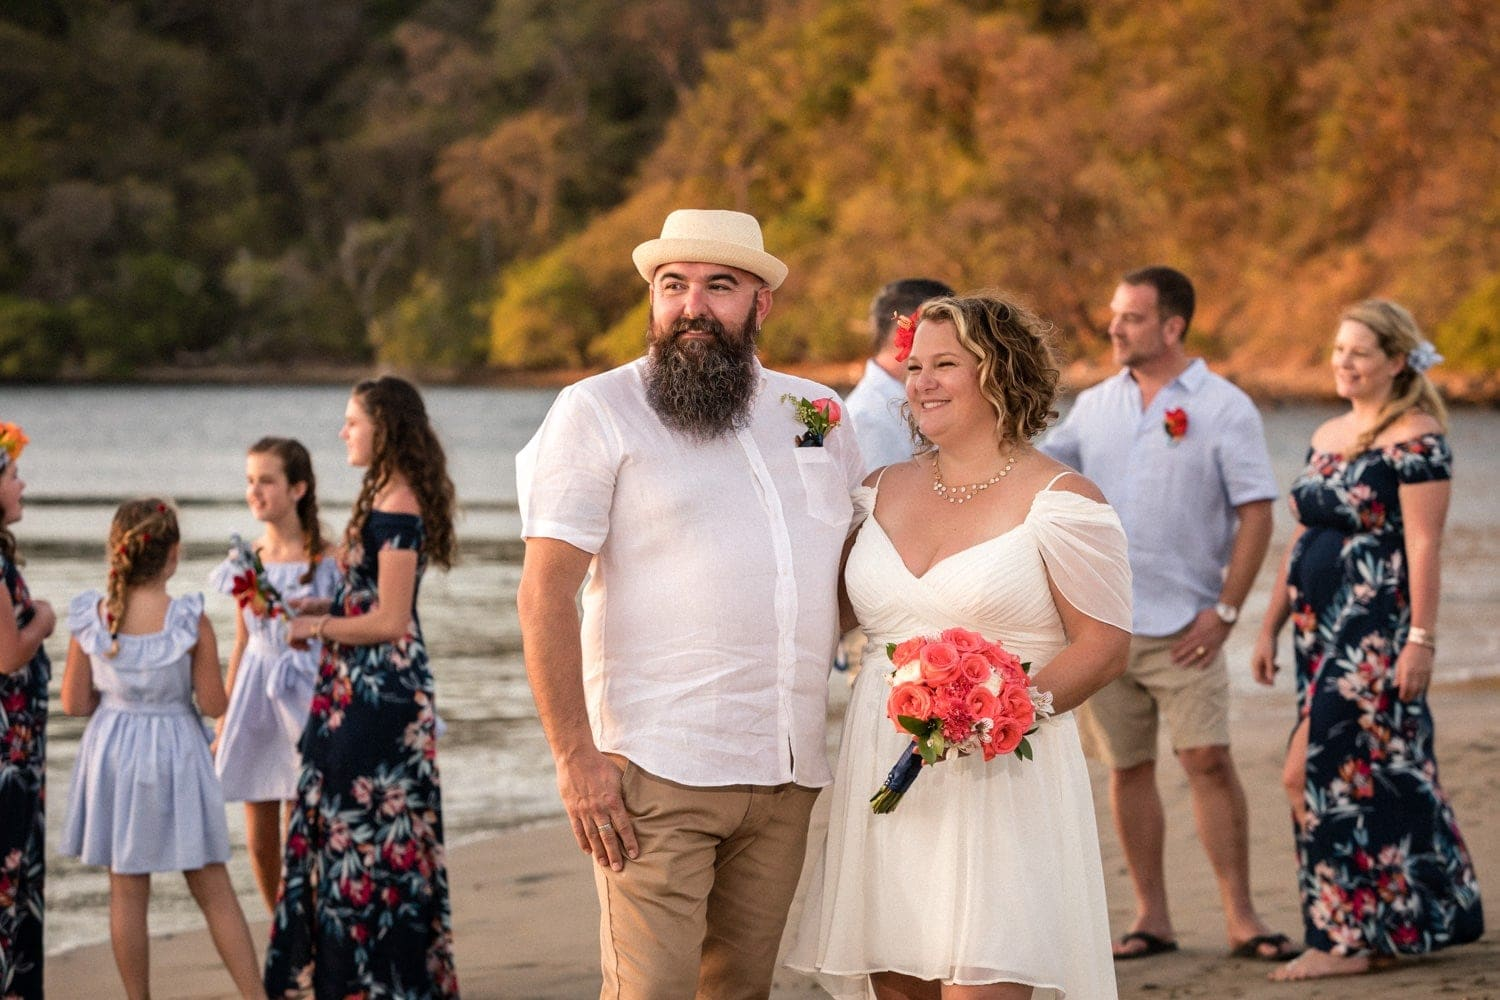 Wedding photo of bridal party on beach in Costa Rica.